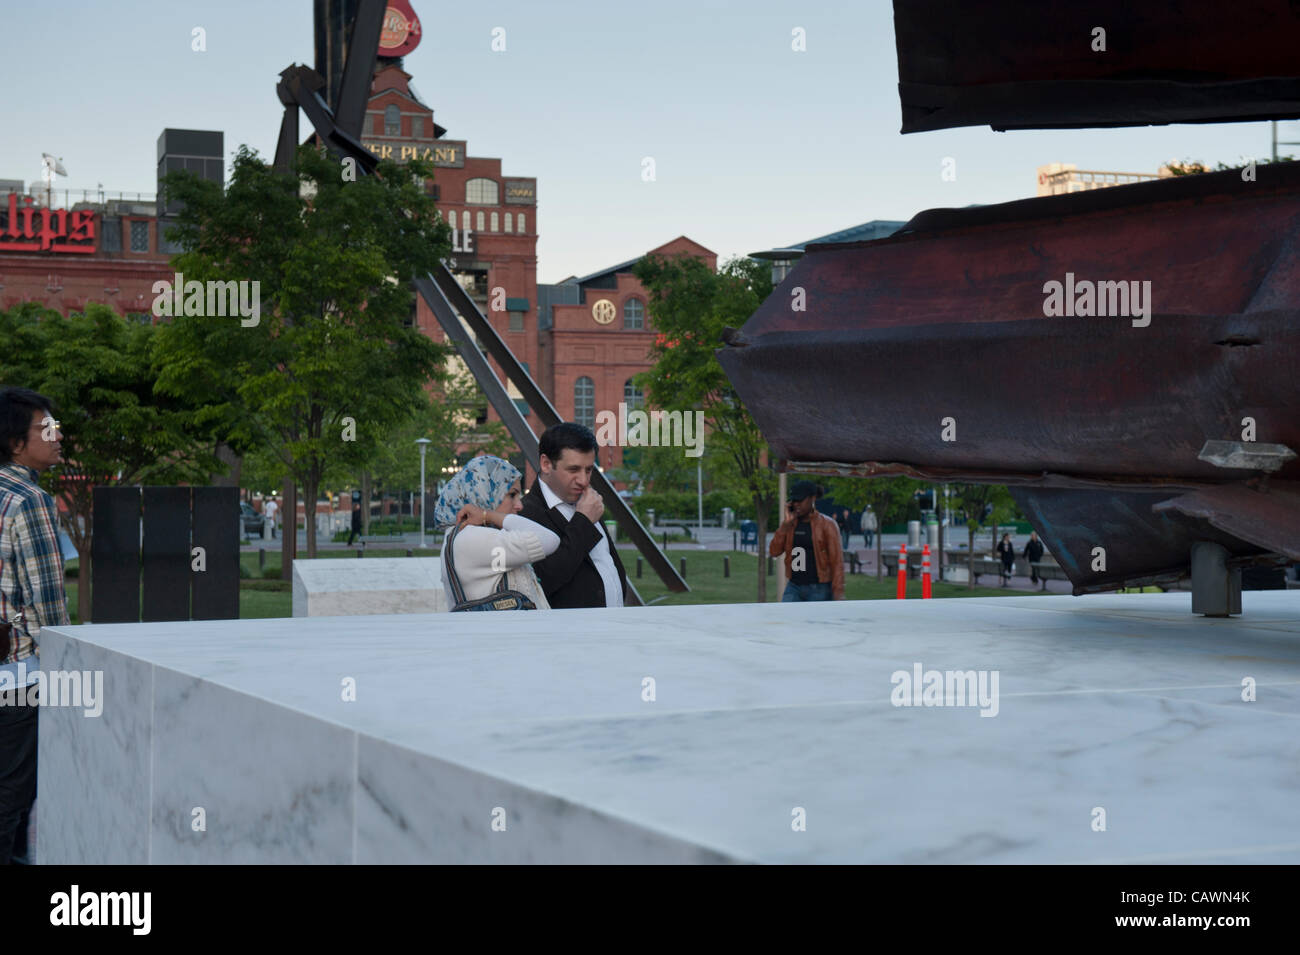 baltimore-usa-27-april-2012-people-viewing-one-of-the-911-memorials-CAWN4K.jpg